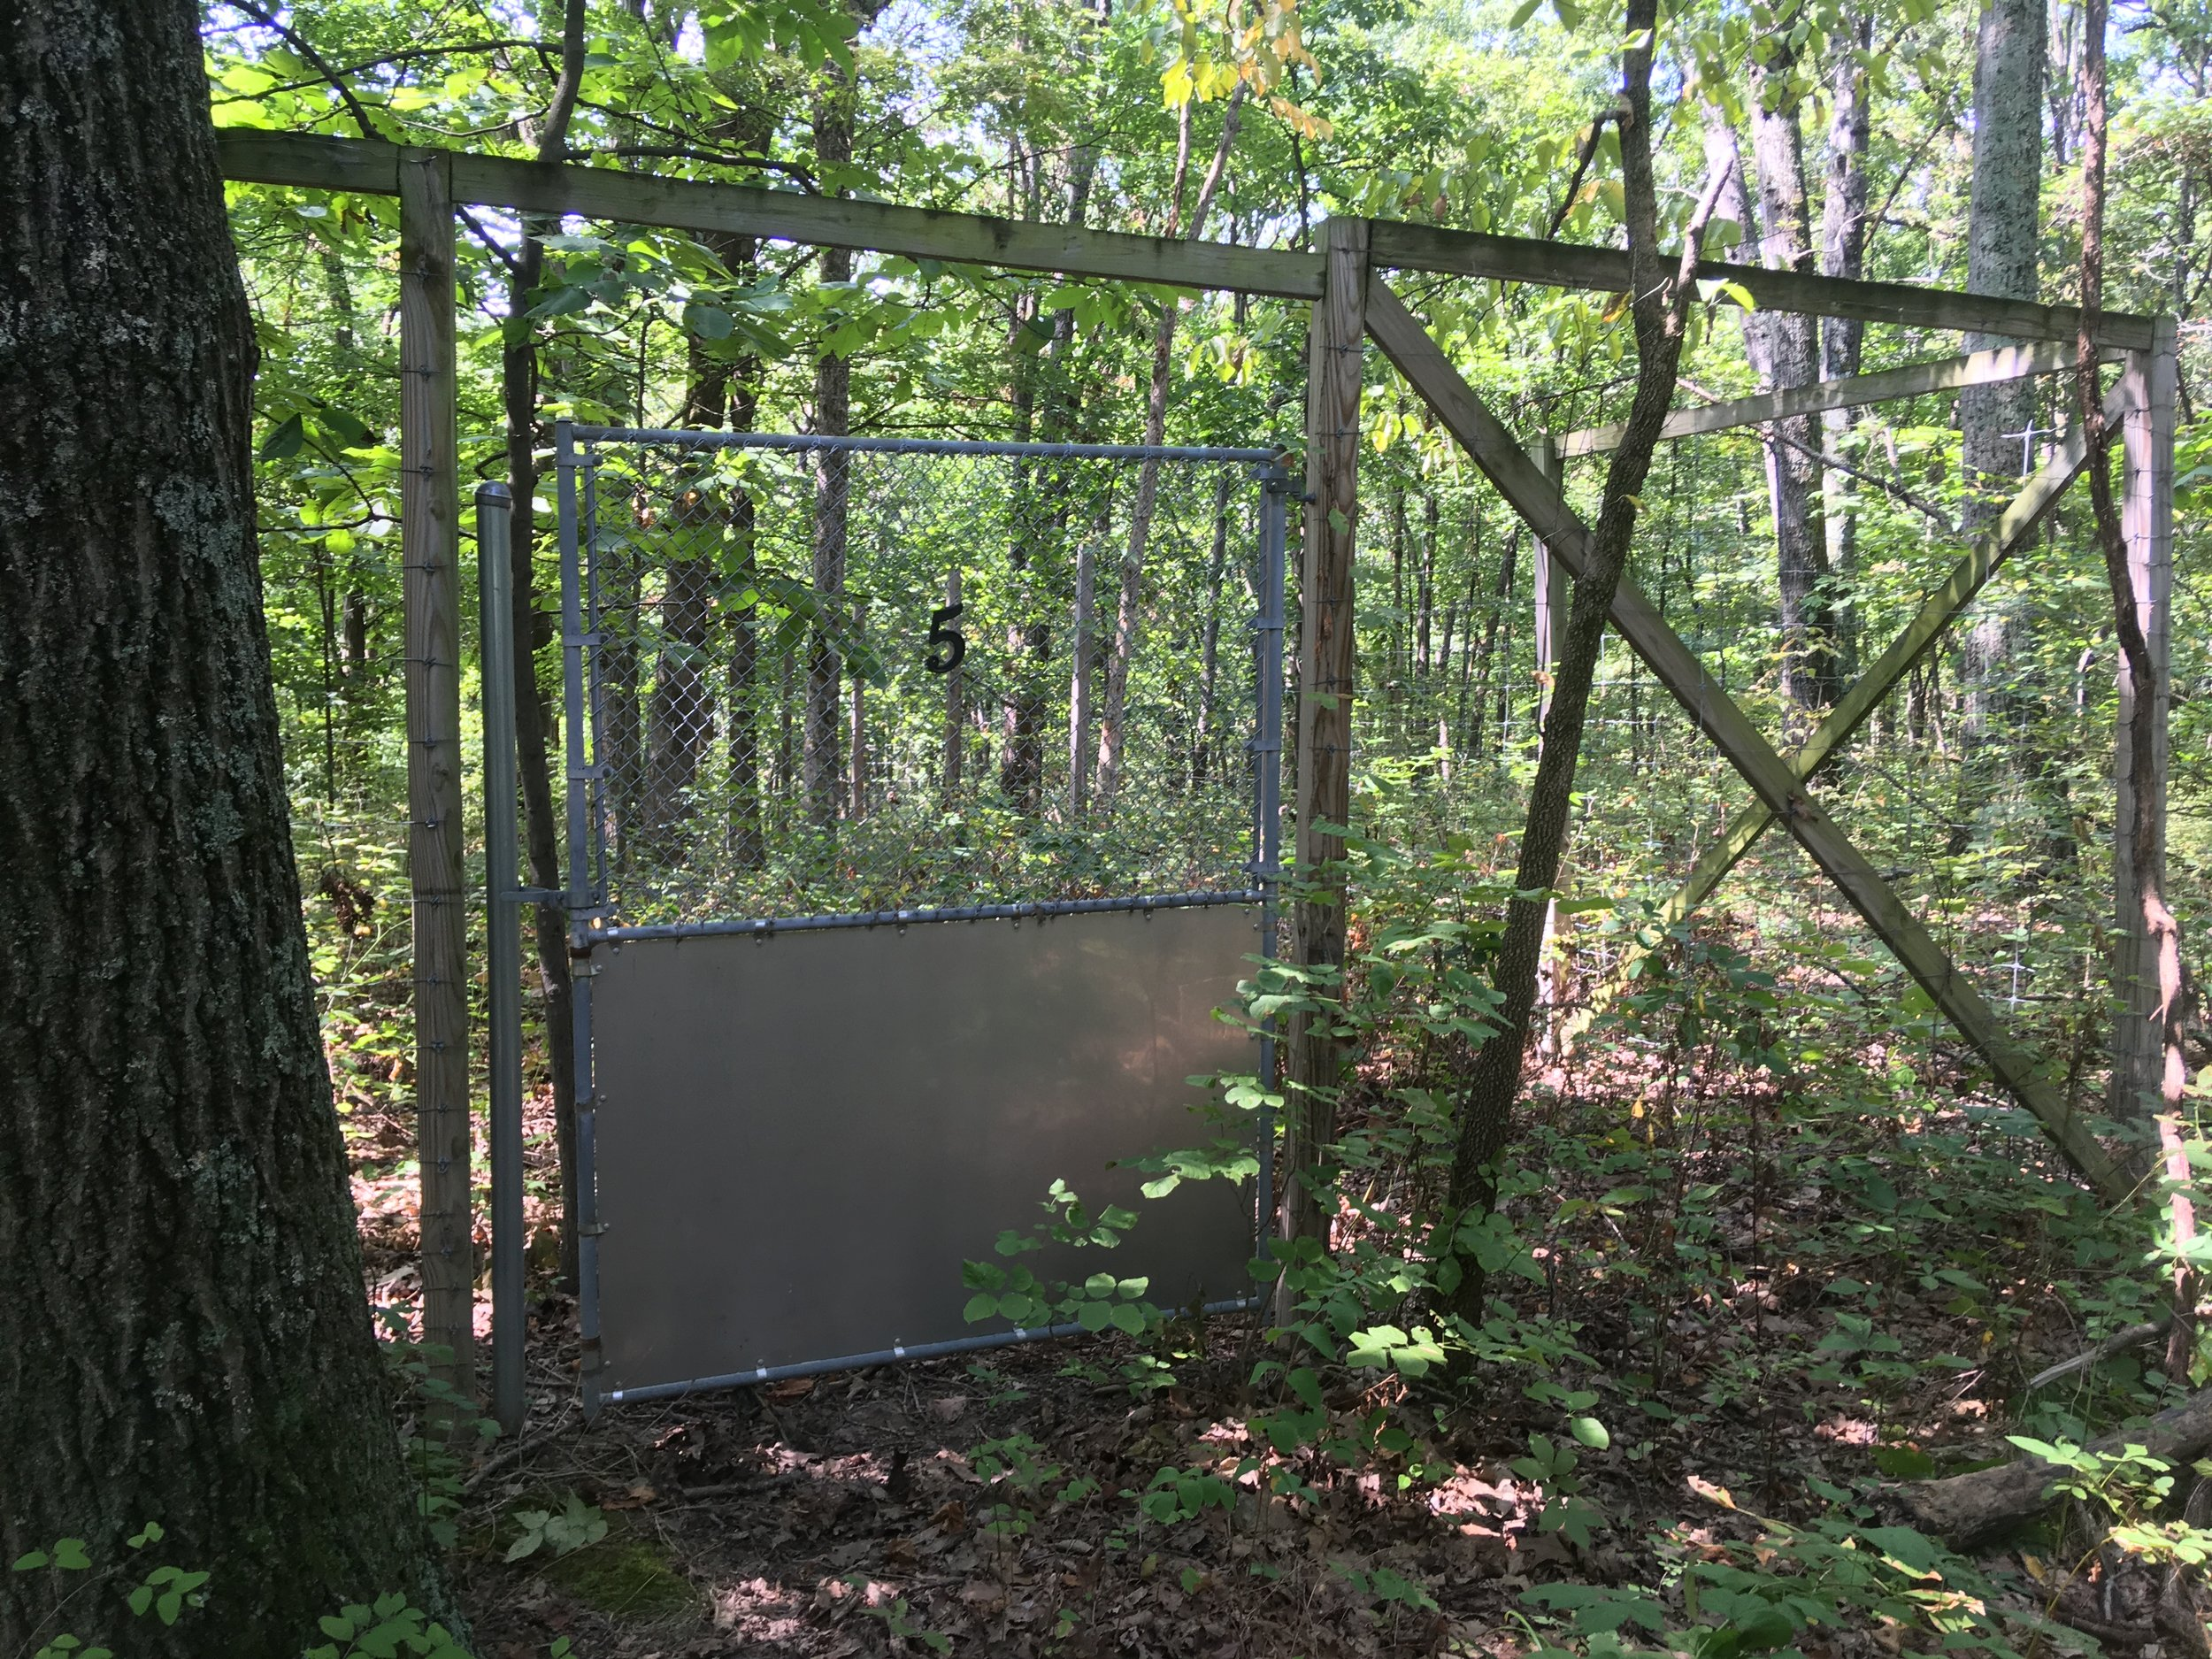 deer exclosures  We have 16 designated, paired 50m x 50m plots to study the effects of white-tailed deer exclusion on ecological systems. Each pair of plots consists of one 50m x 50m fenced exclosure (deer-free treatment) and an unfenced 50m x 50m adjacent plot (control group).